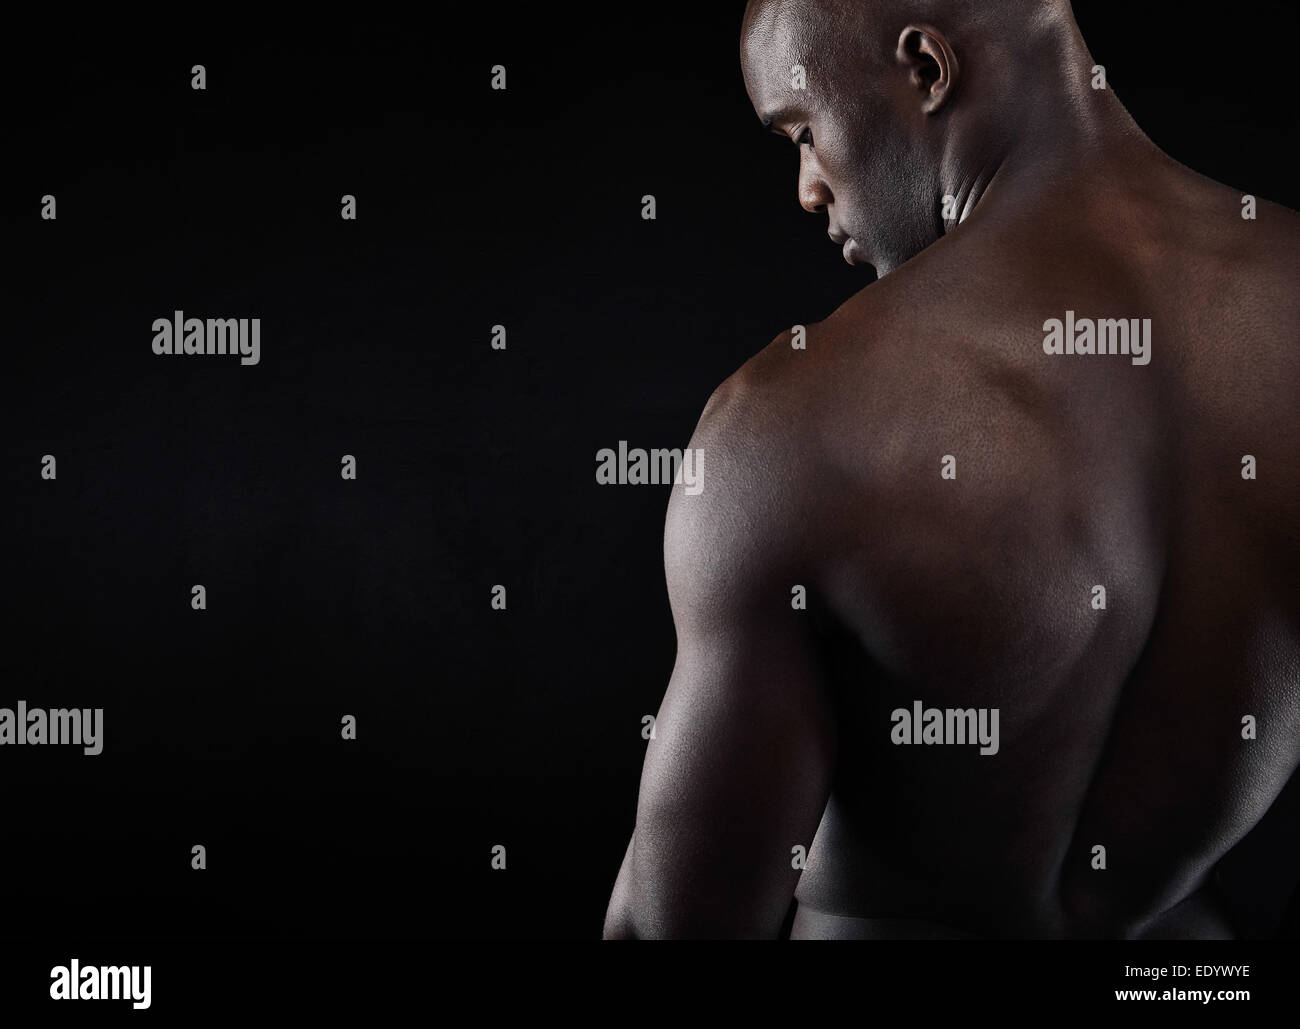 Rear view of young man with muscular build standing on black background. African shirtless male model with copy - Stock Image